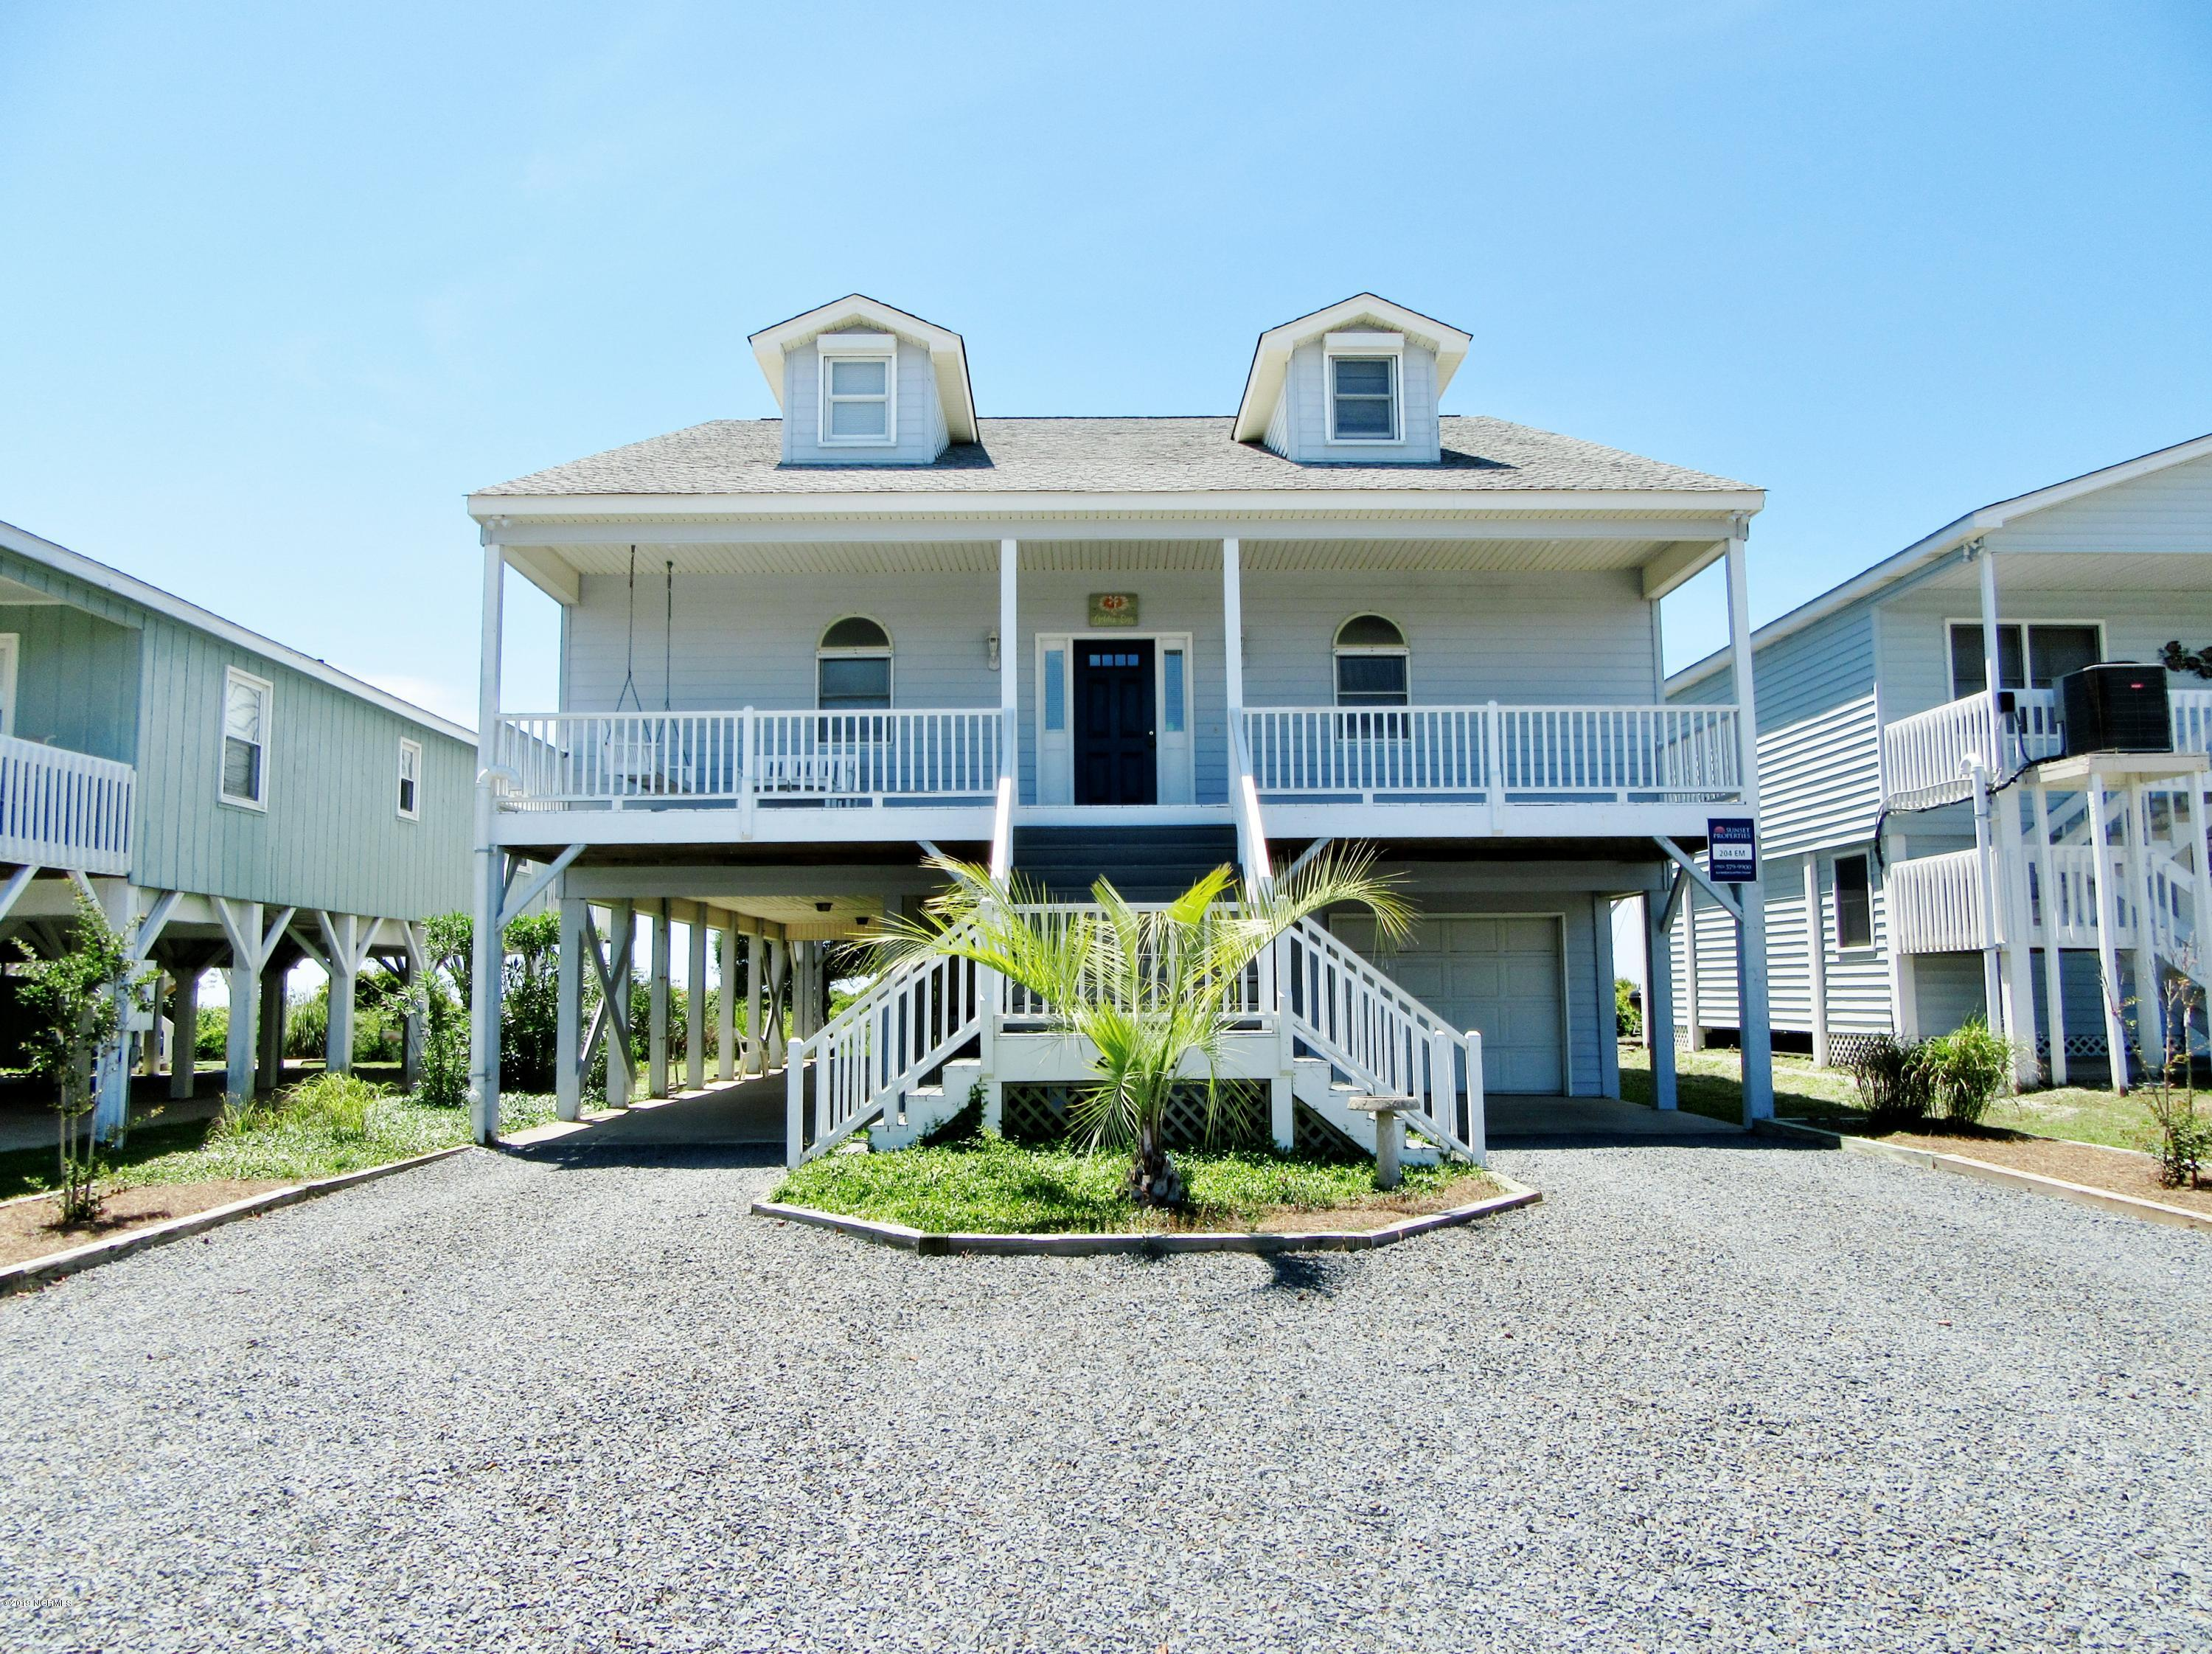 204 E E Main Street Sunset Beach, NC 28468